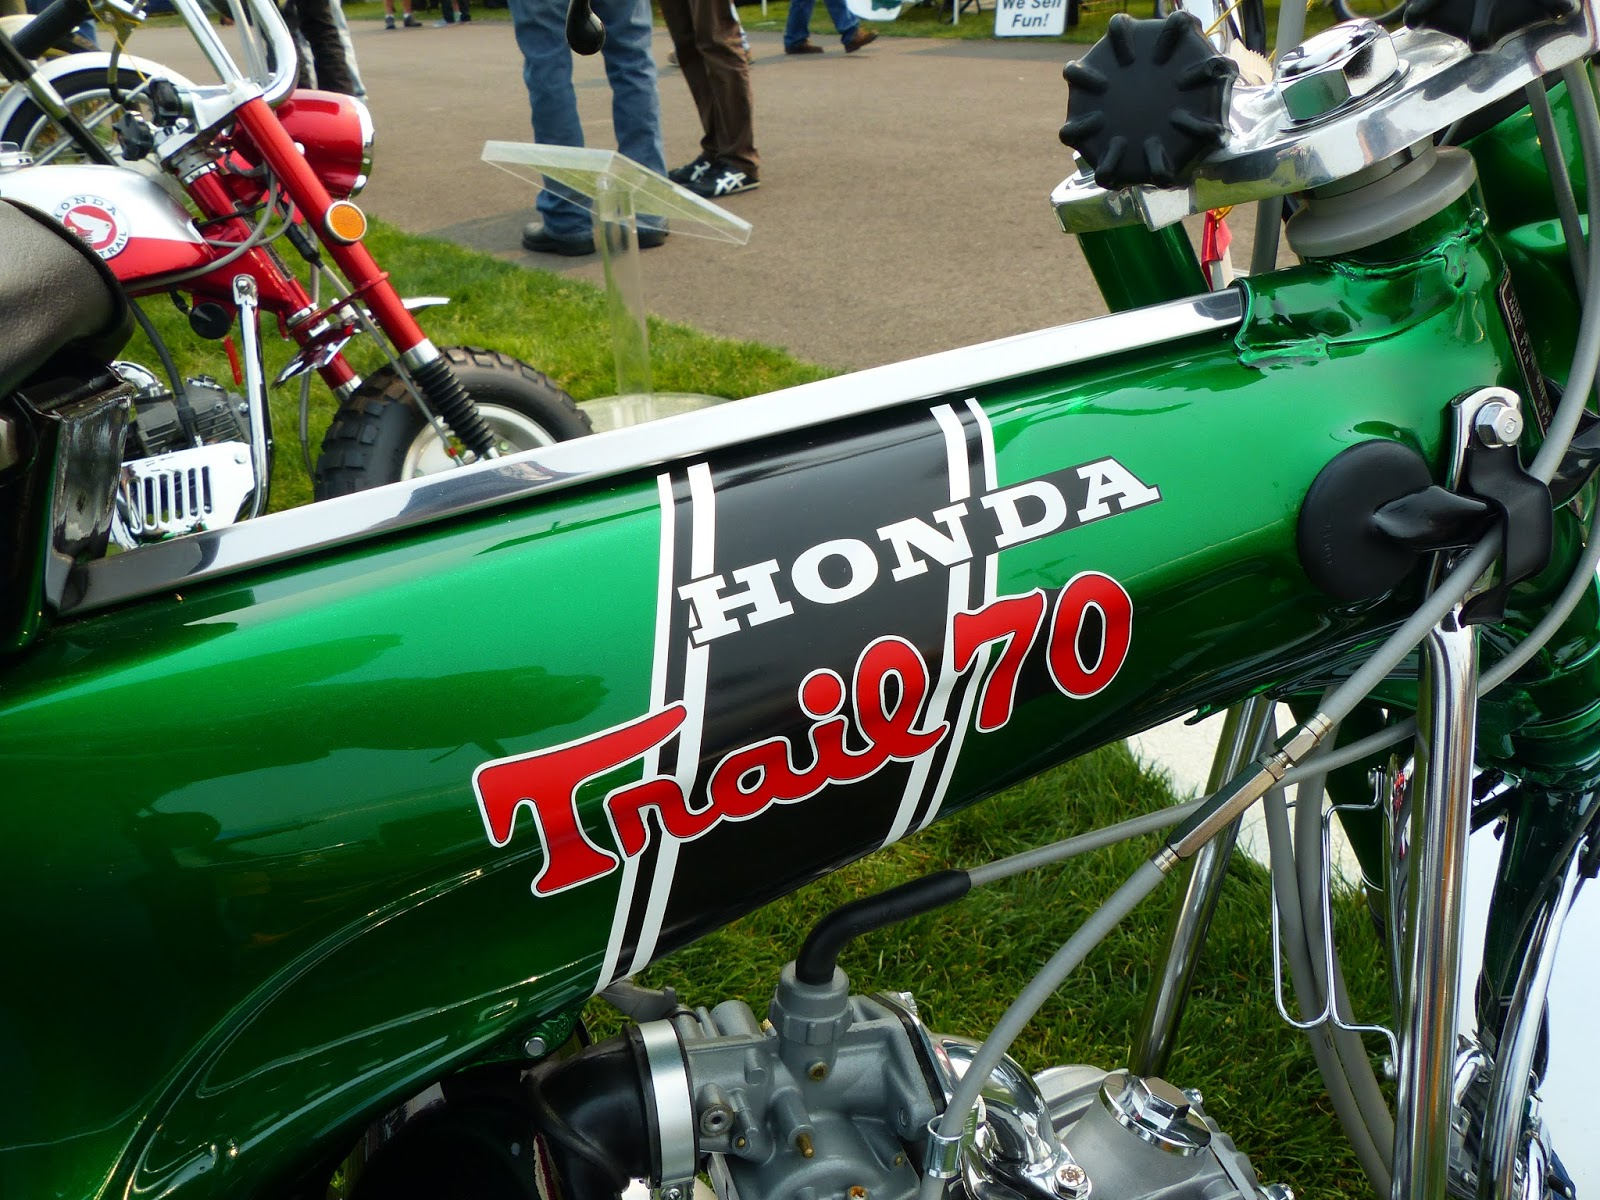 Oldmotodude 1970 Honda Ct70 On Display At The Meet 2015 Vintage Moped Motorcycle Festival Tacoma Wa